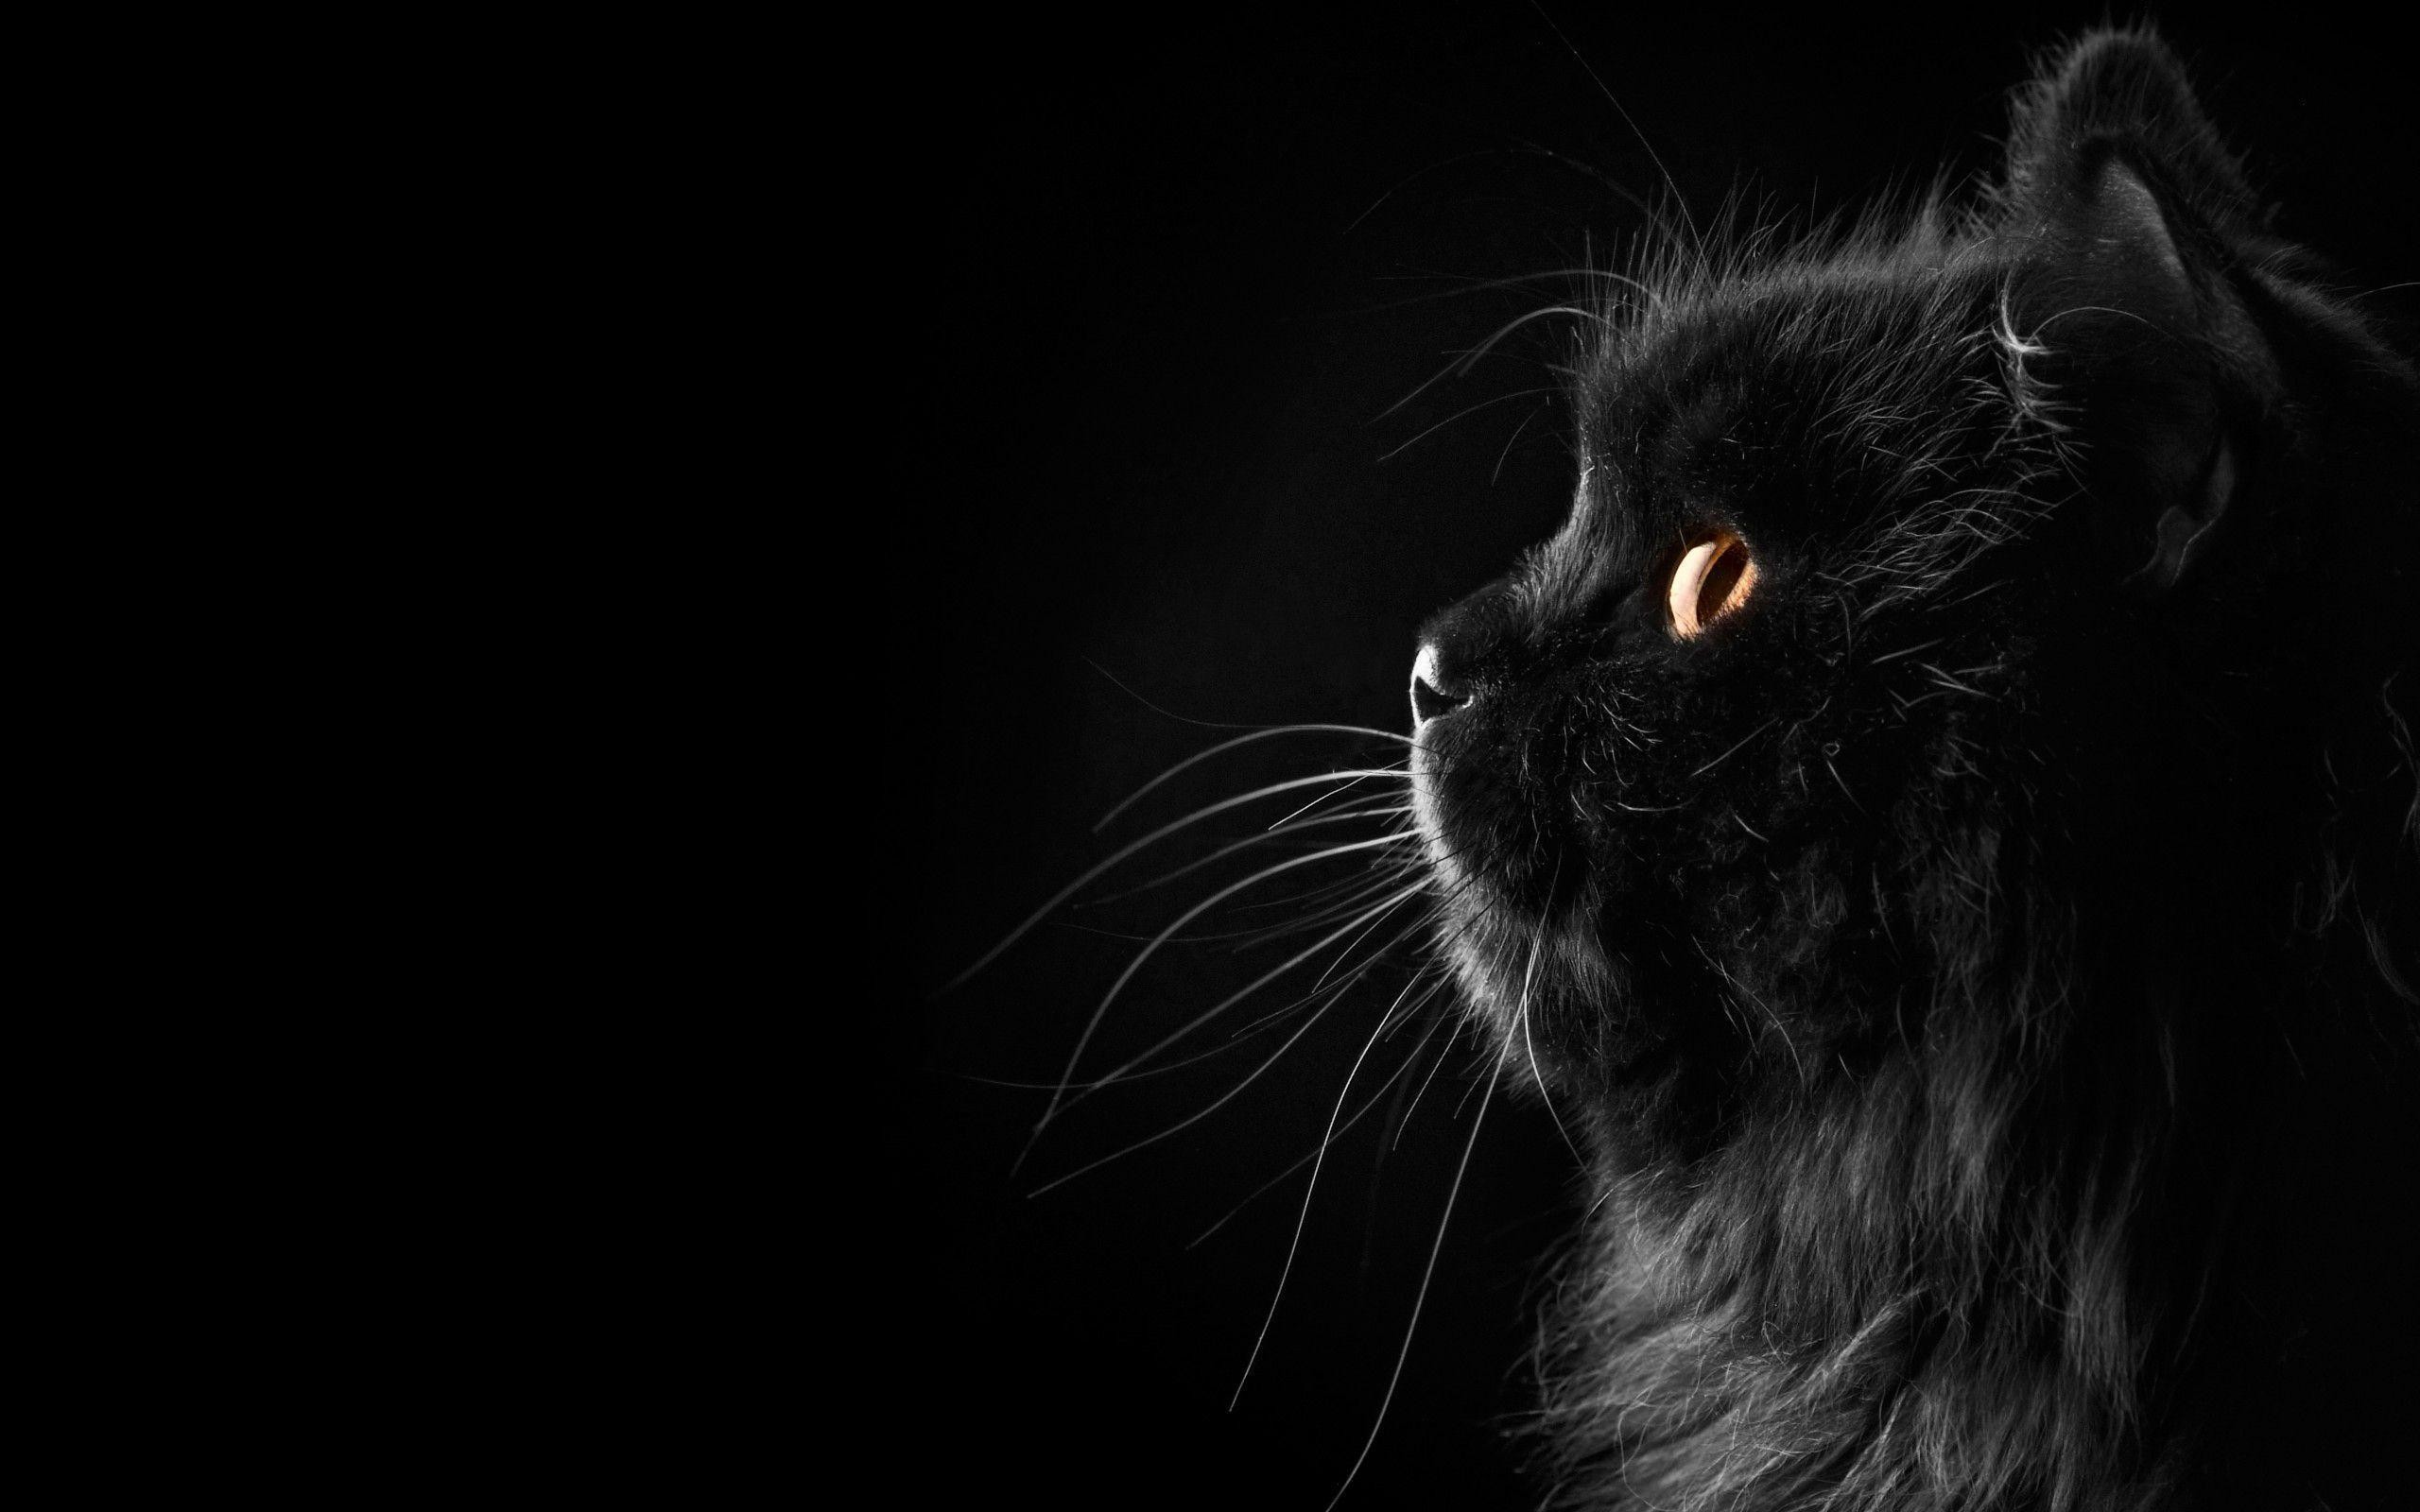 2560x1600 Black Cat Wallpaper 40 377089 High Definition Wallpapers| wallalay.